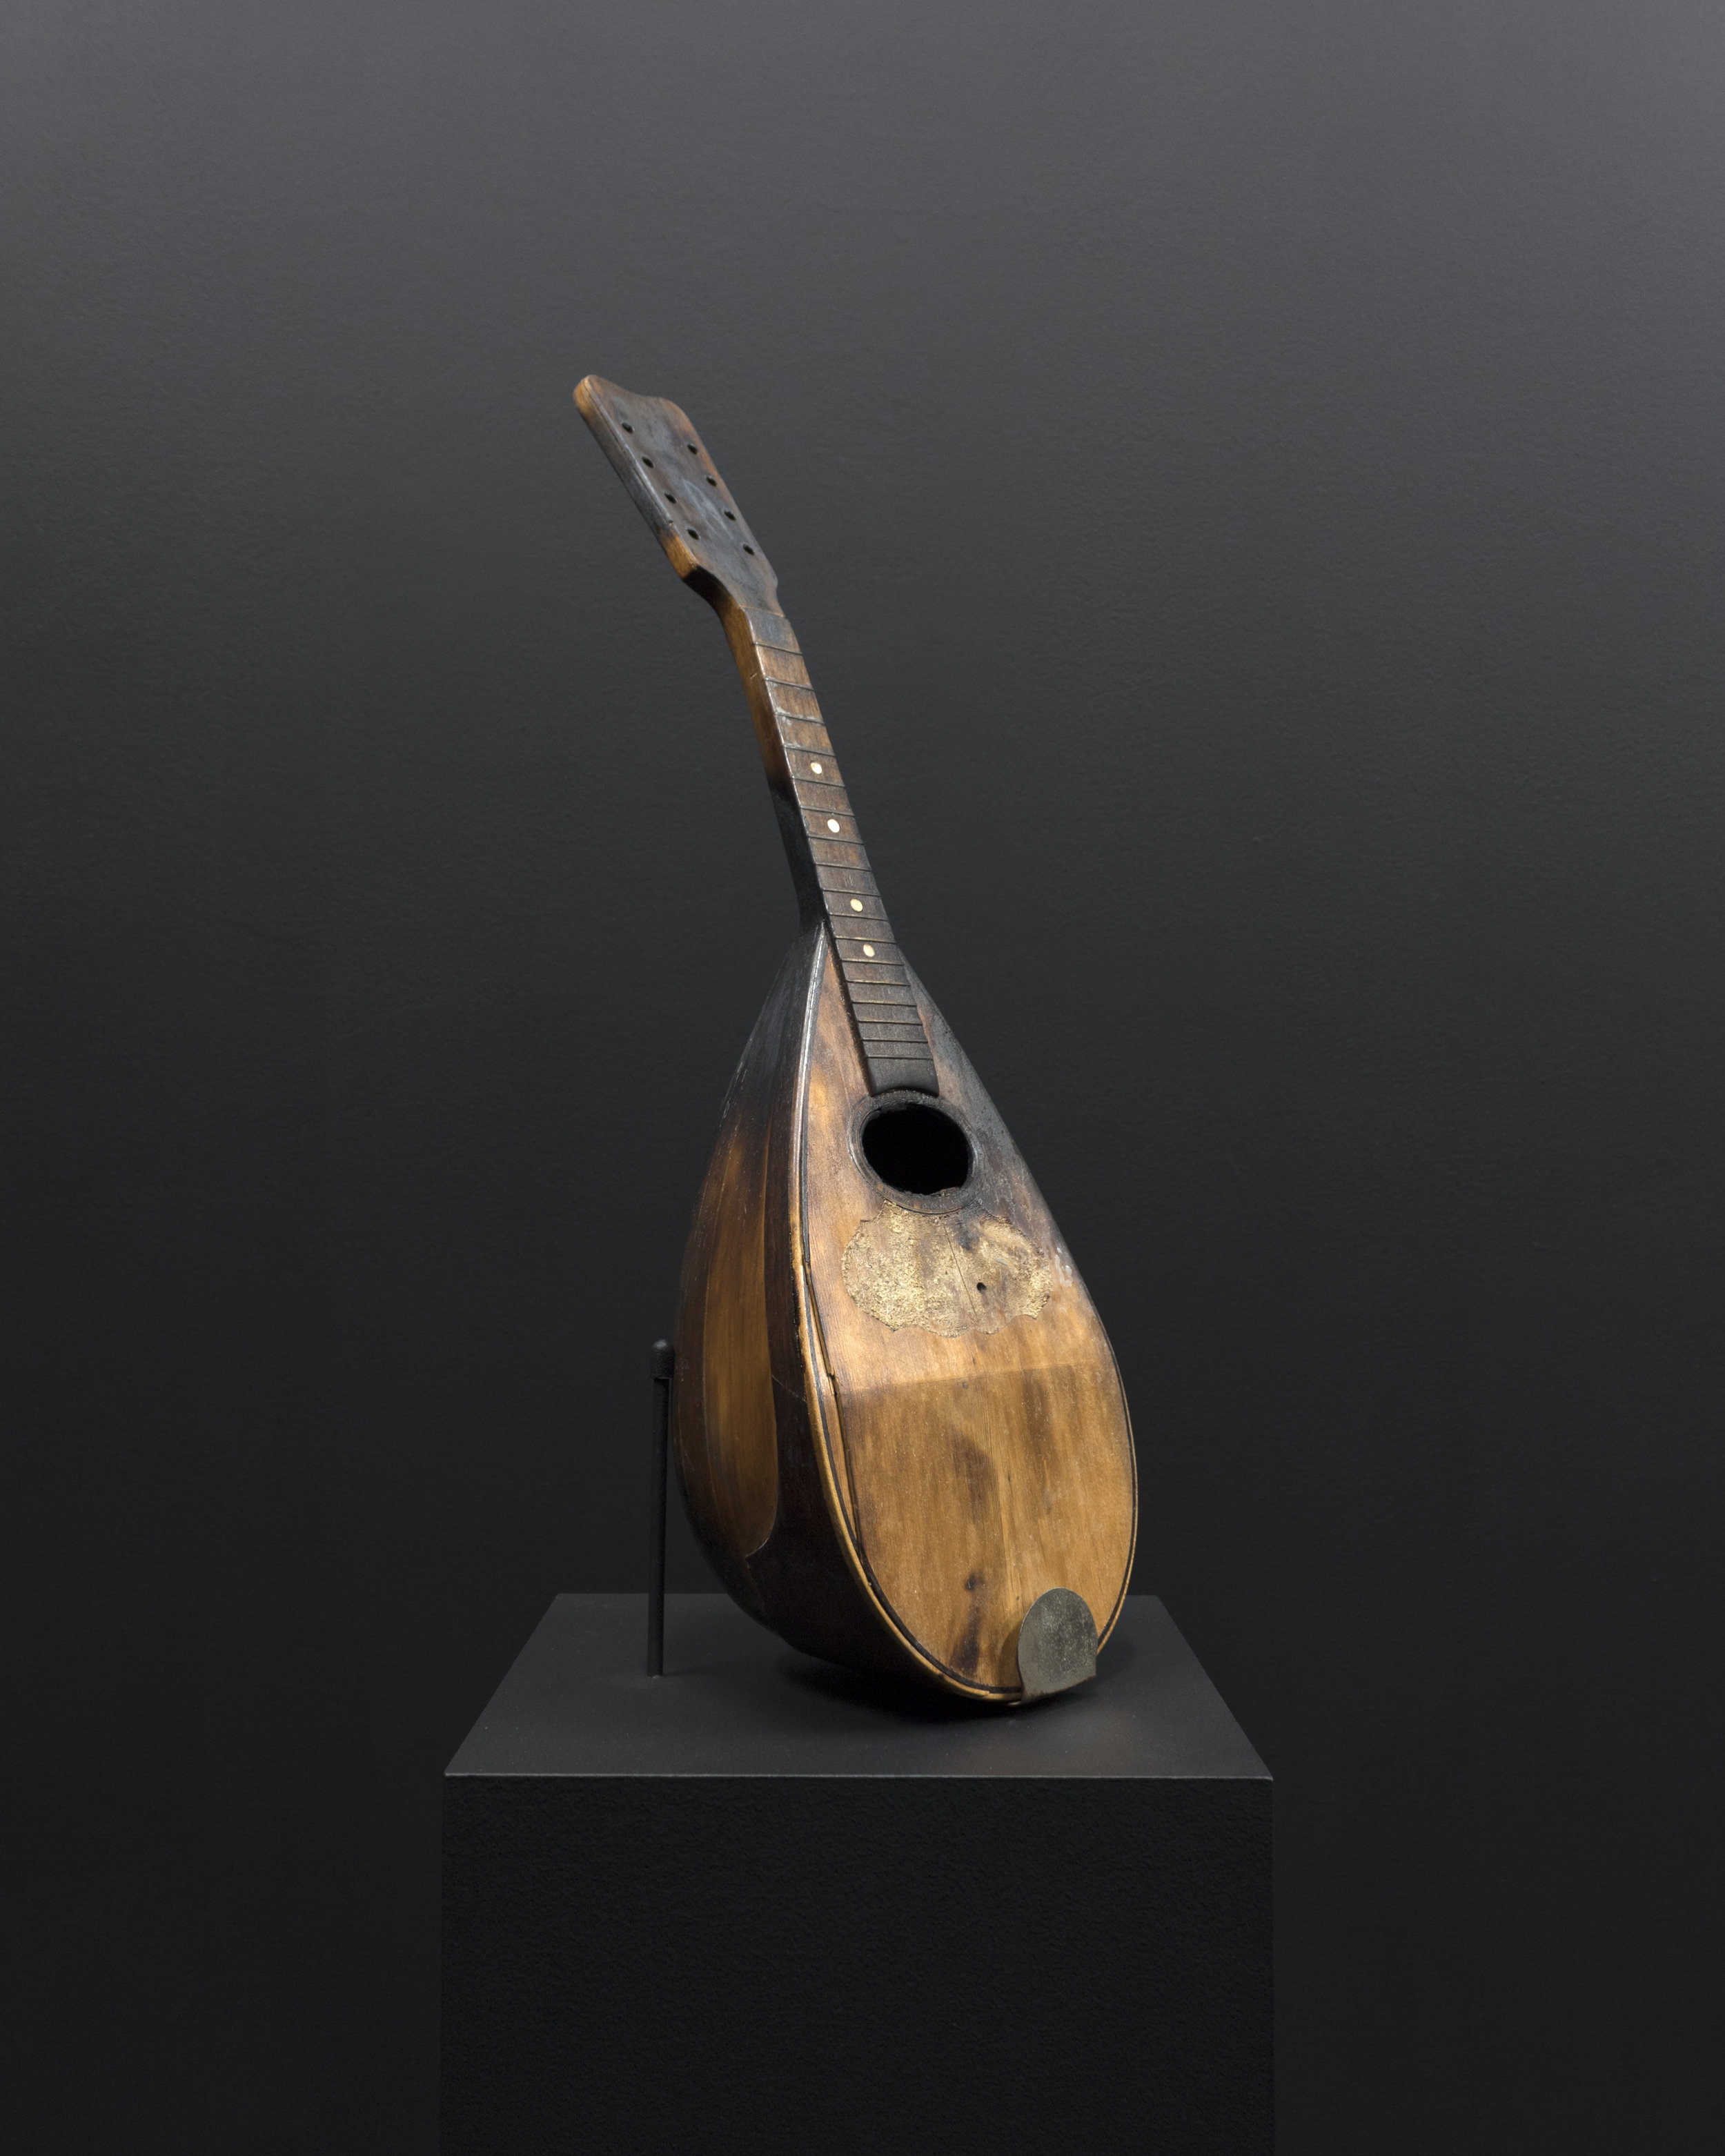 Micca Schippa,  separation of pieces of an organism caused by natural events (i.e. floods, scavengers etc.) , Antique bowl back mandolin. 2018.